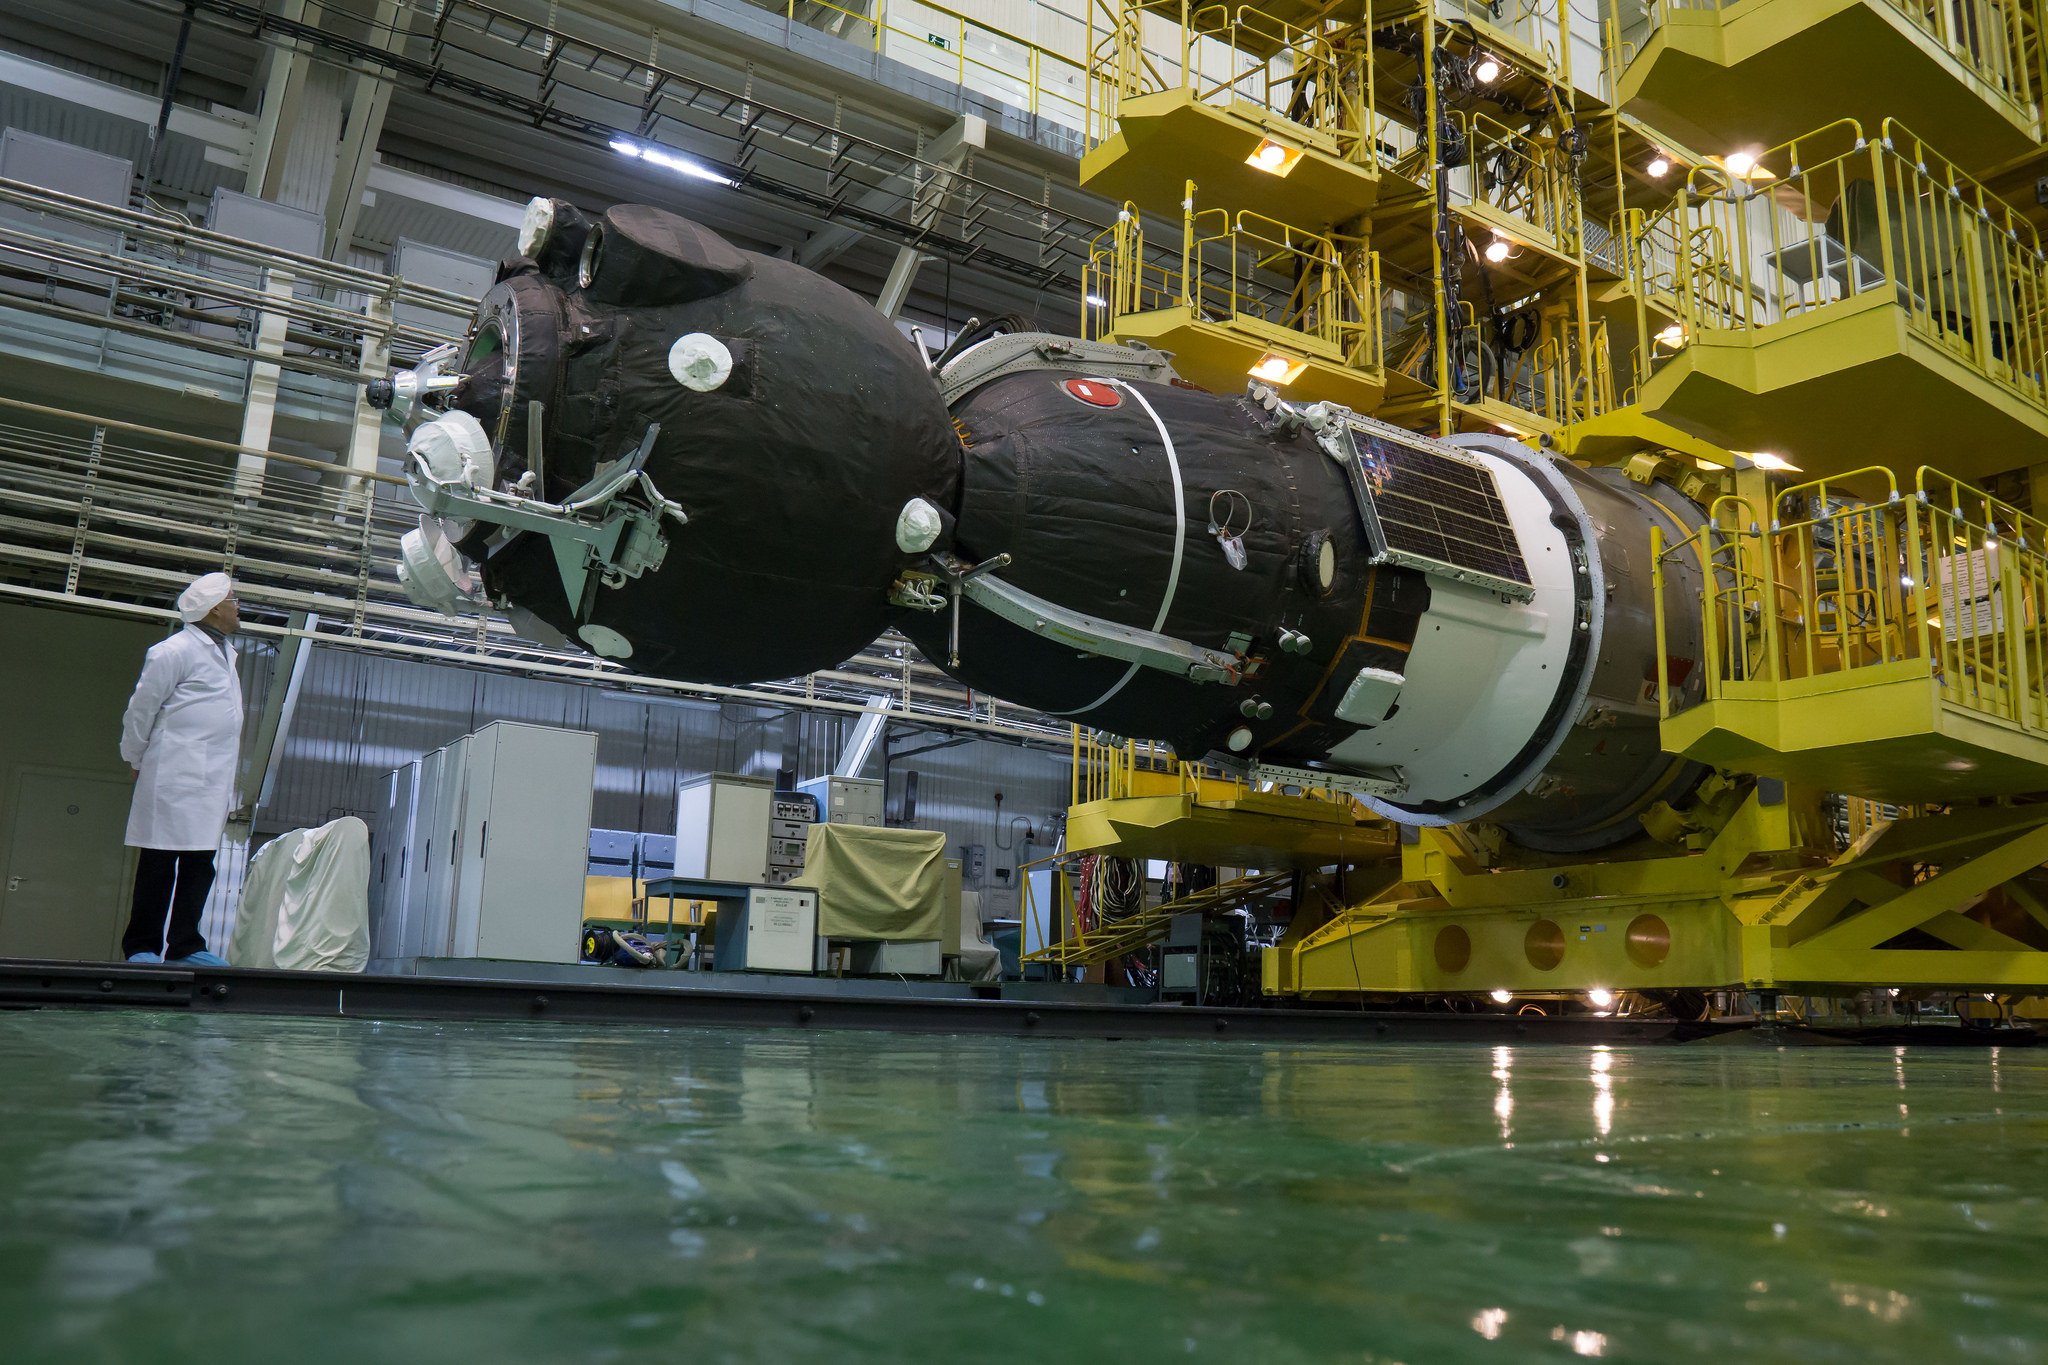 an analysis of nasas dilemma over the commercial crew program Given delays in the commercial crew program, nasa has extended its   appendix c: summary of spacex contract milestones and dates.